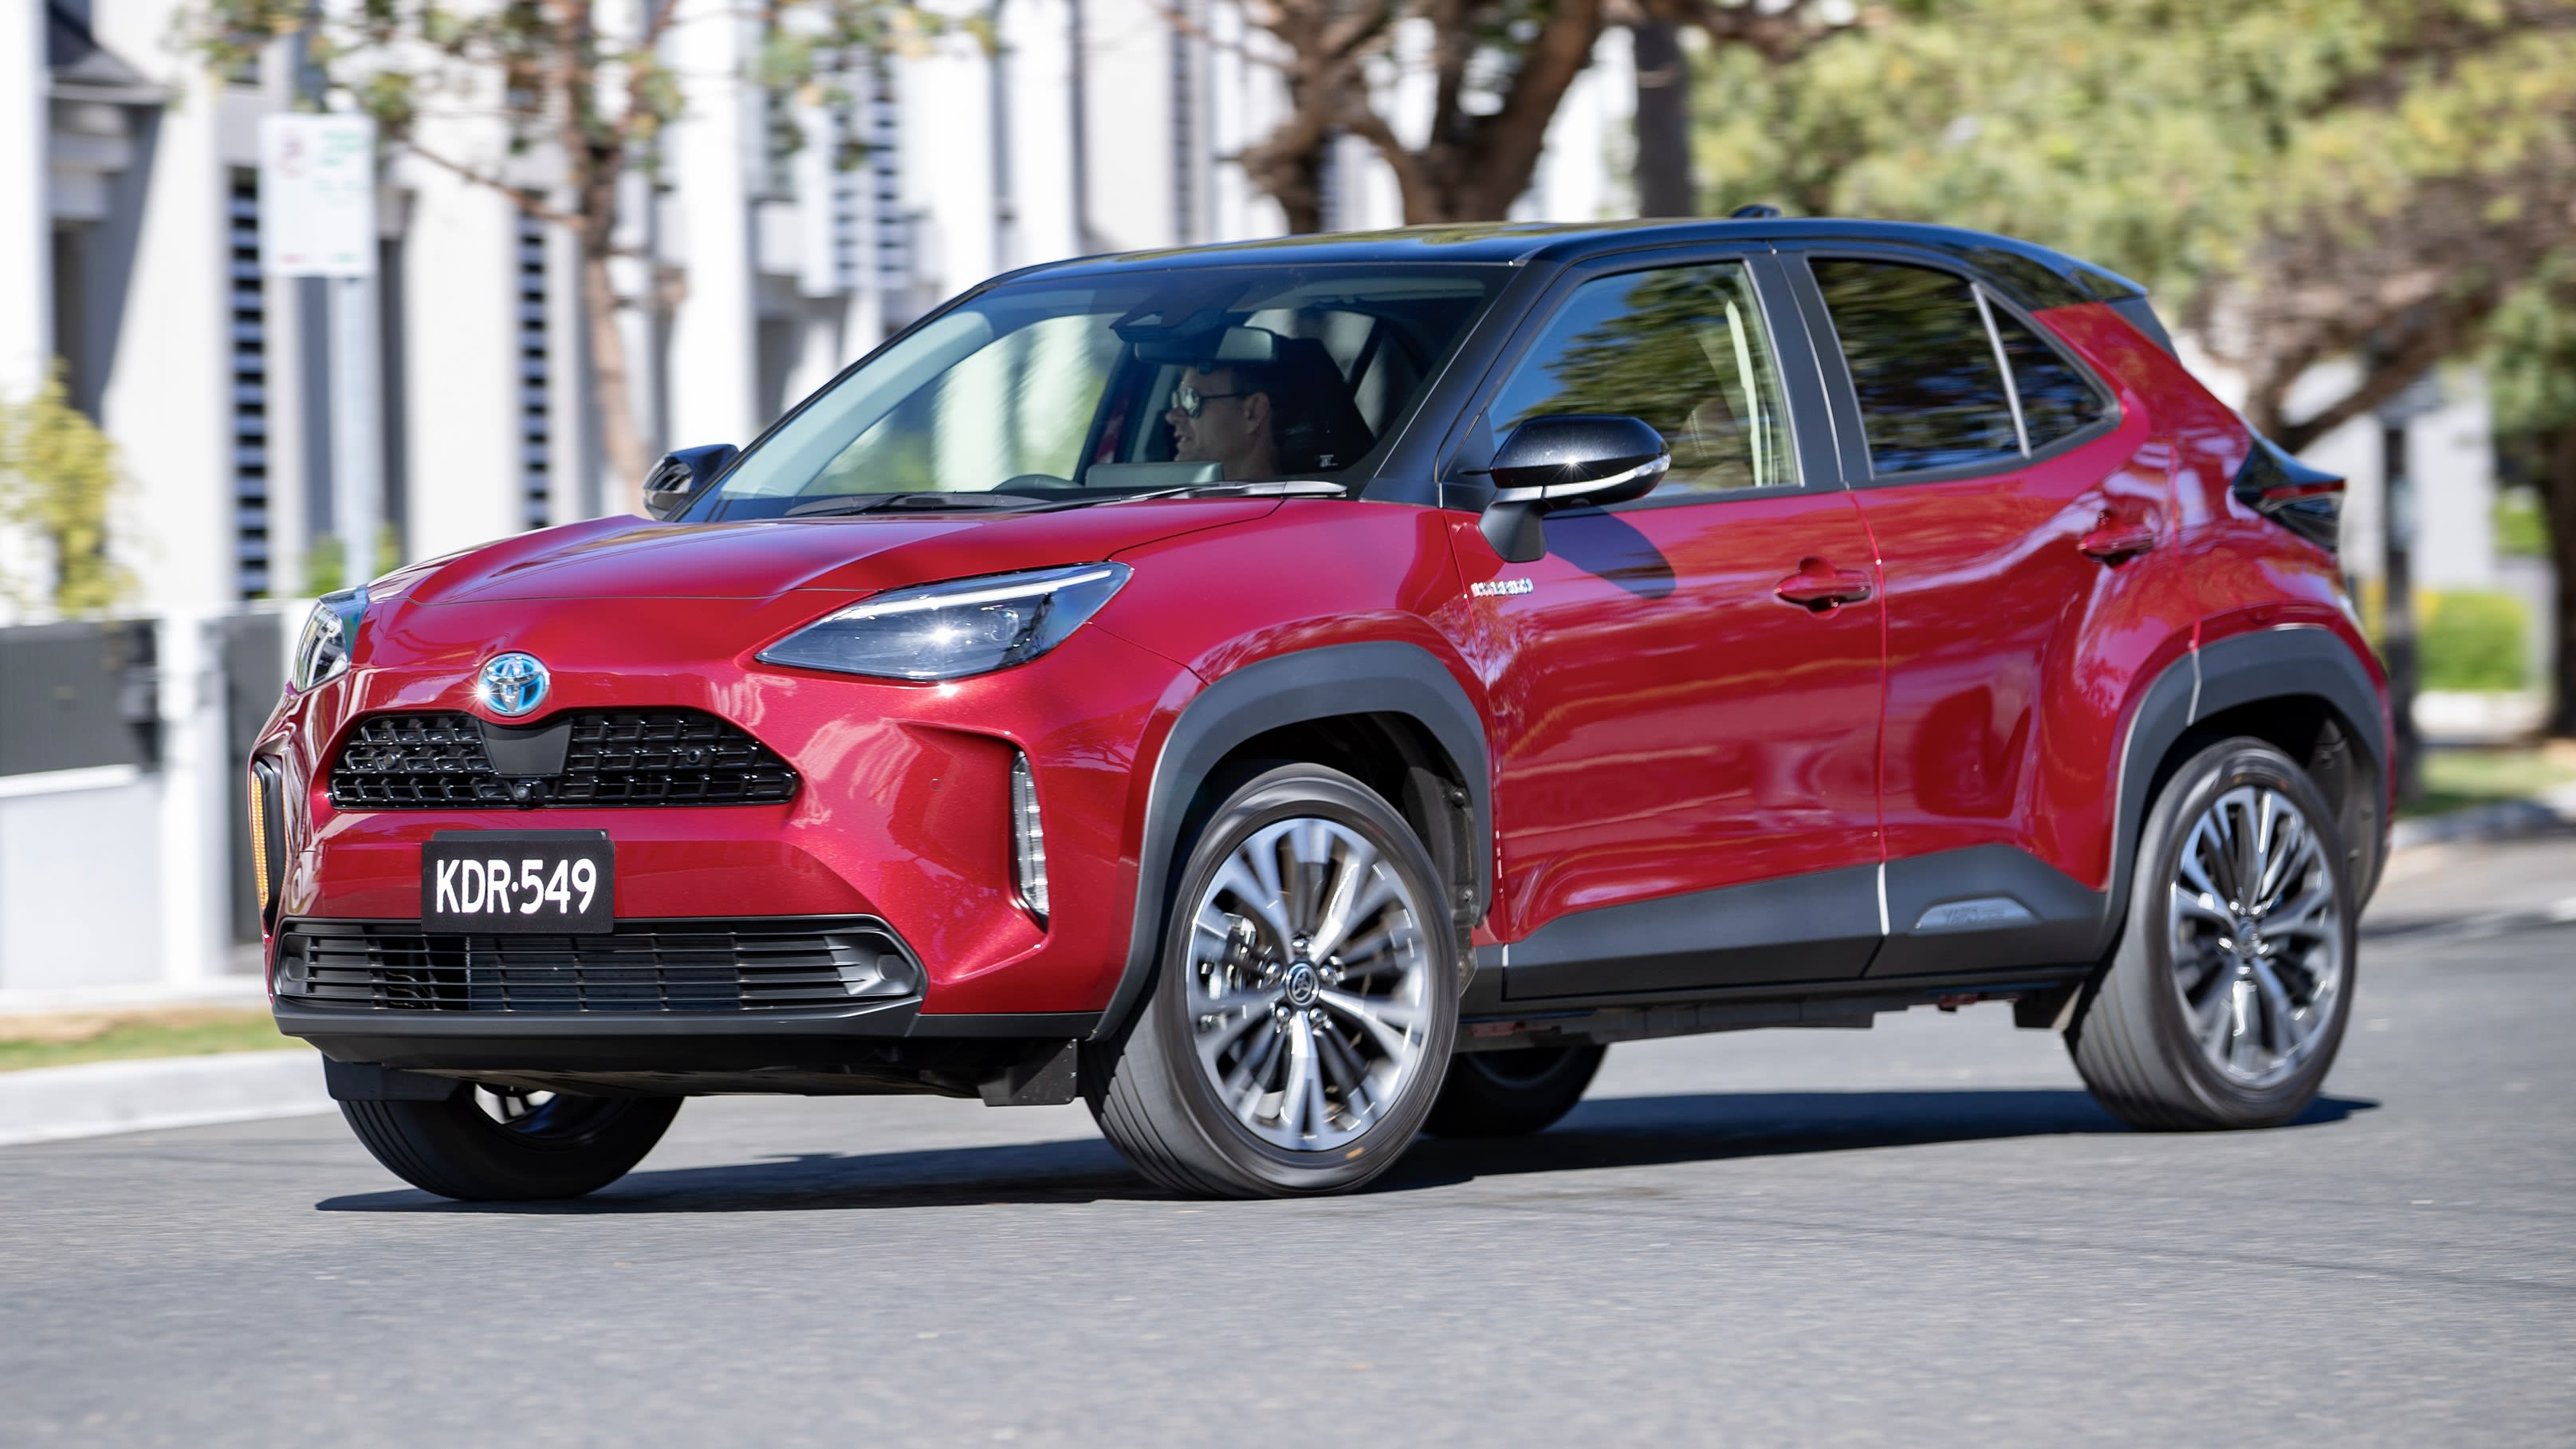 The compact SUV market gets a new entrant from Toyota but is it good enough to topple the  segment leading Mazda CX-3.